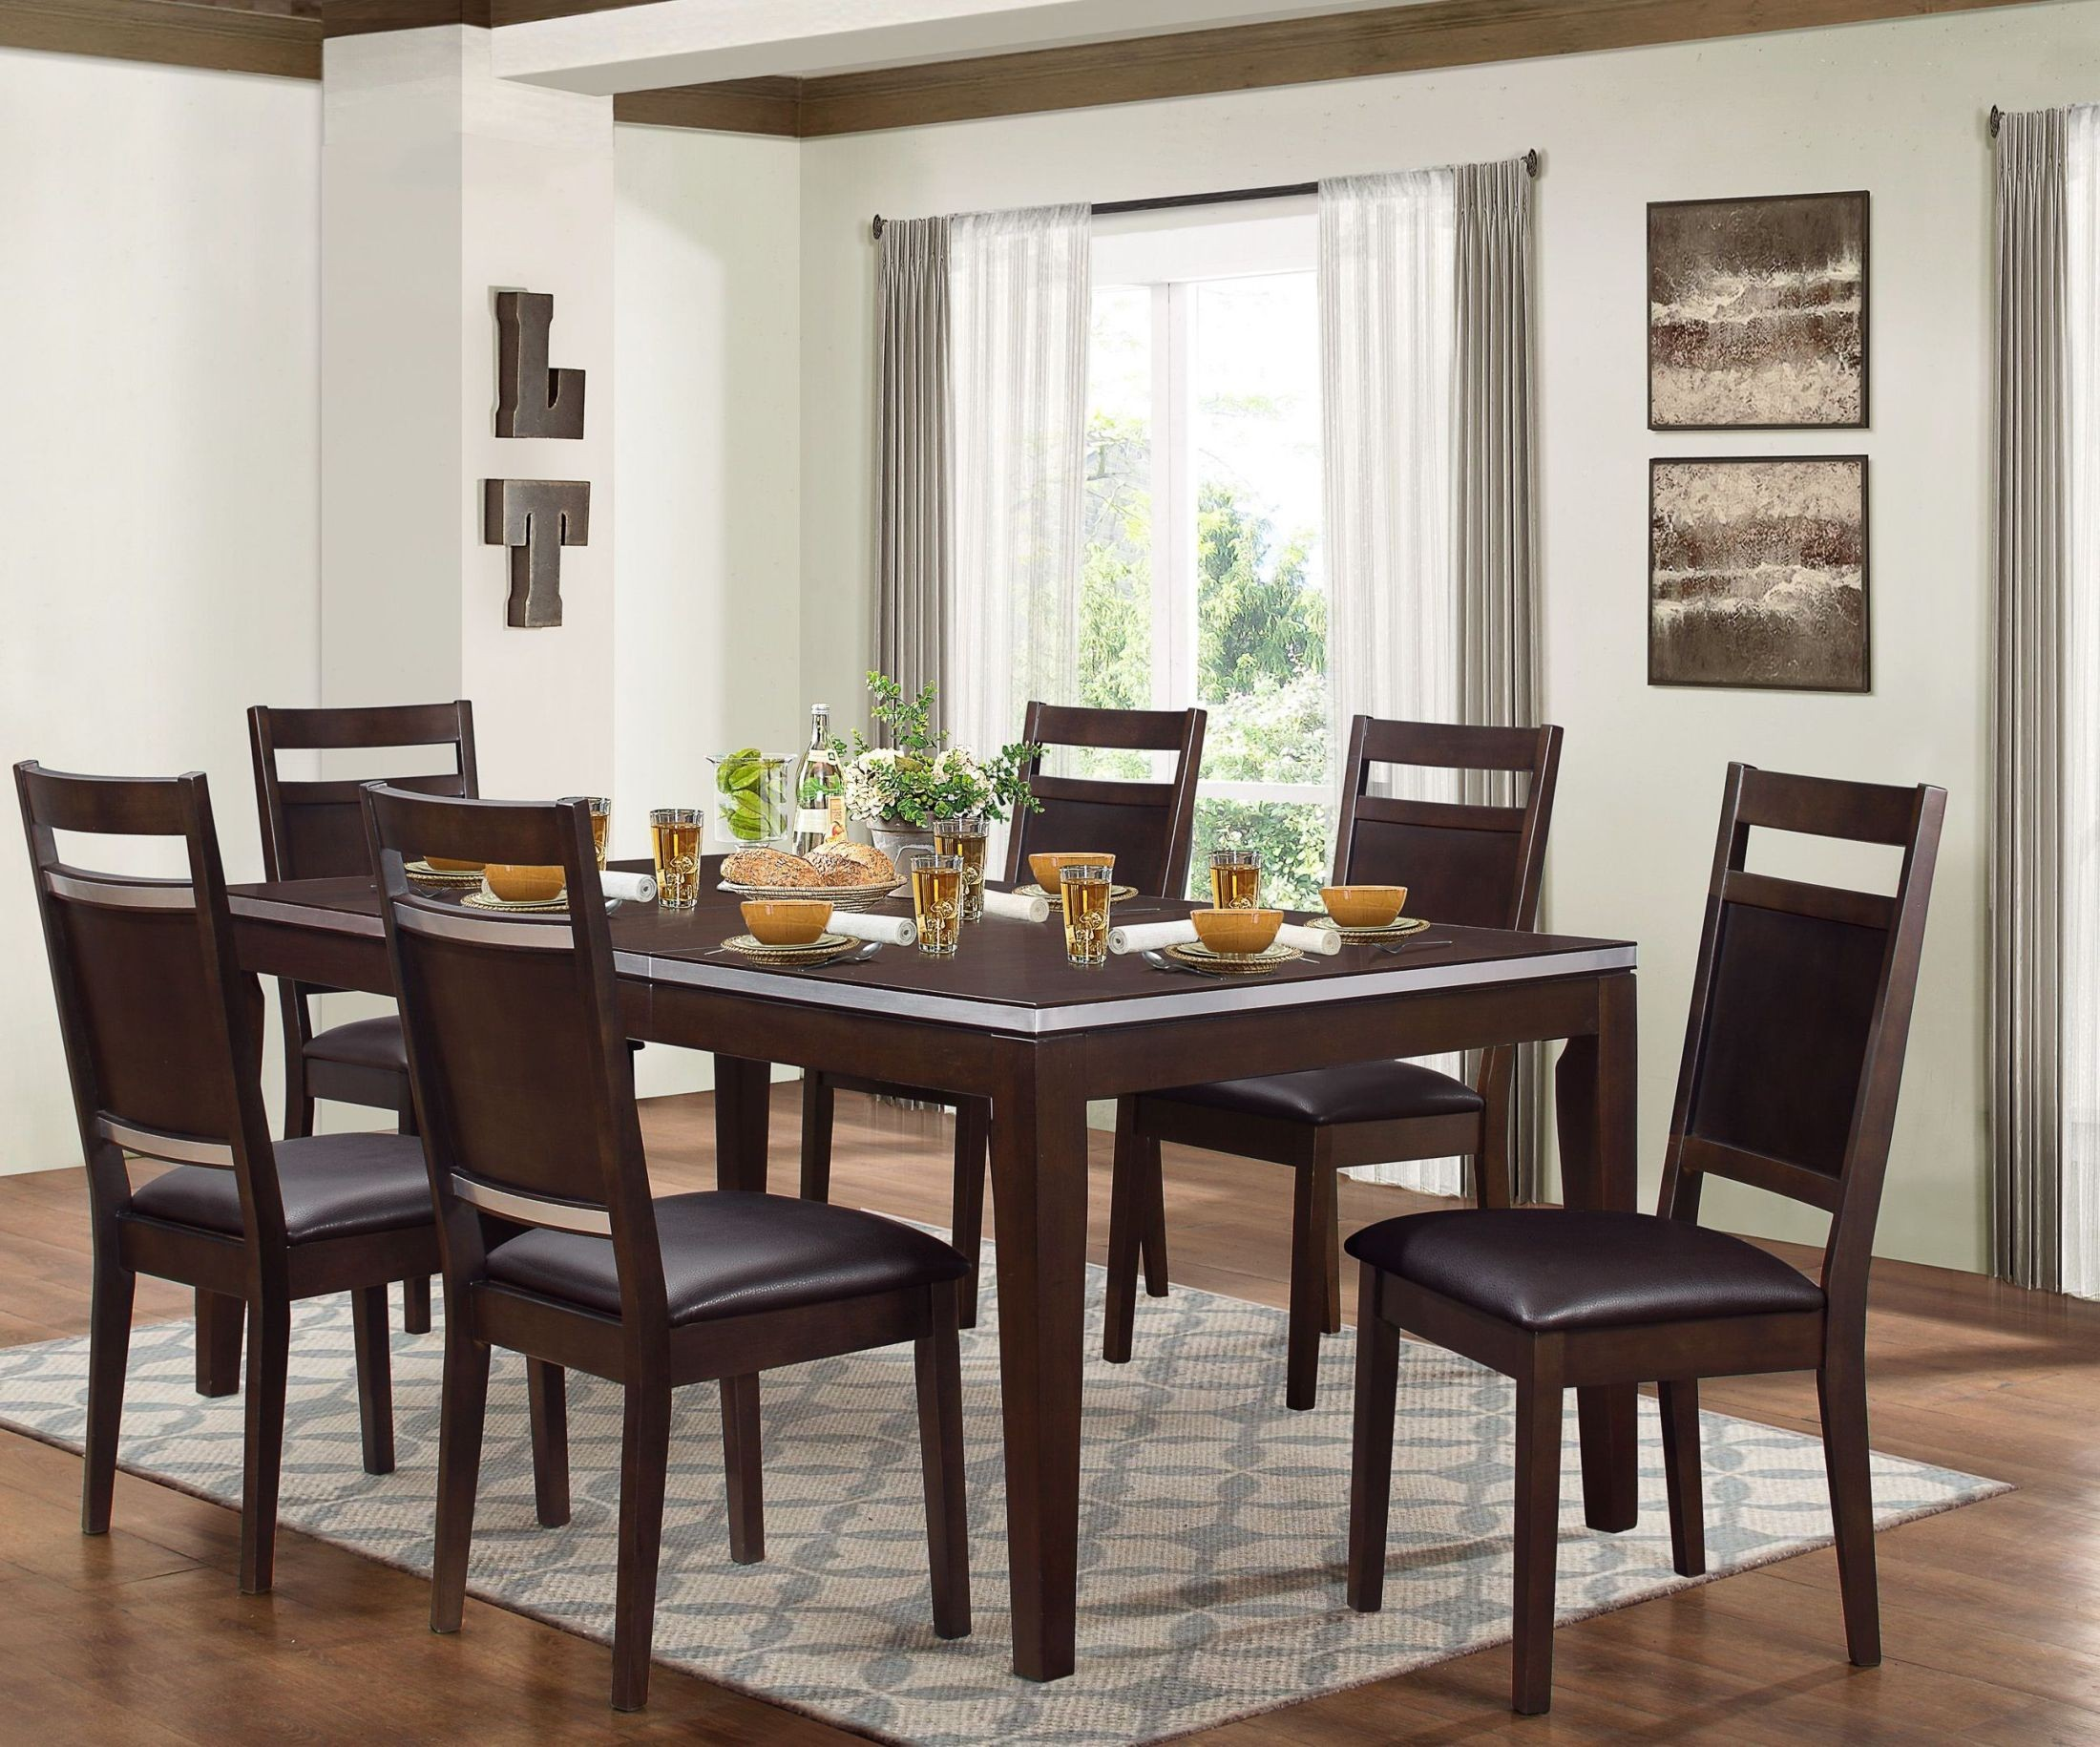 Pasco brown dining room set from homelegance coleman for Brown dining room set